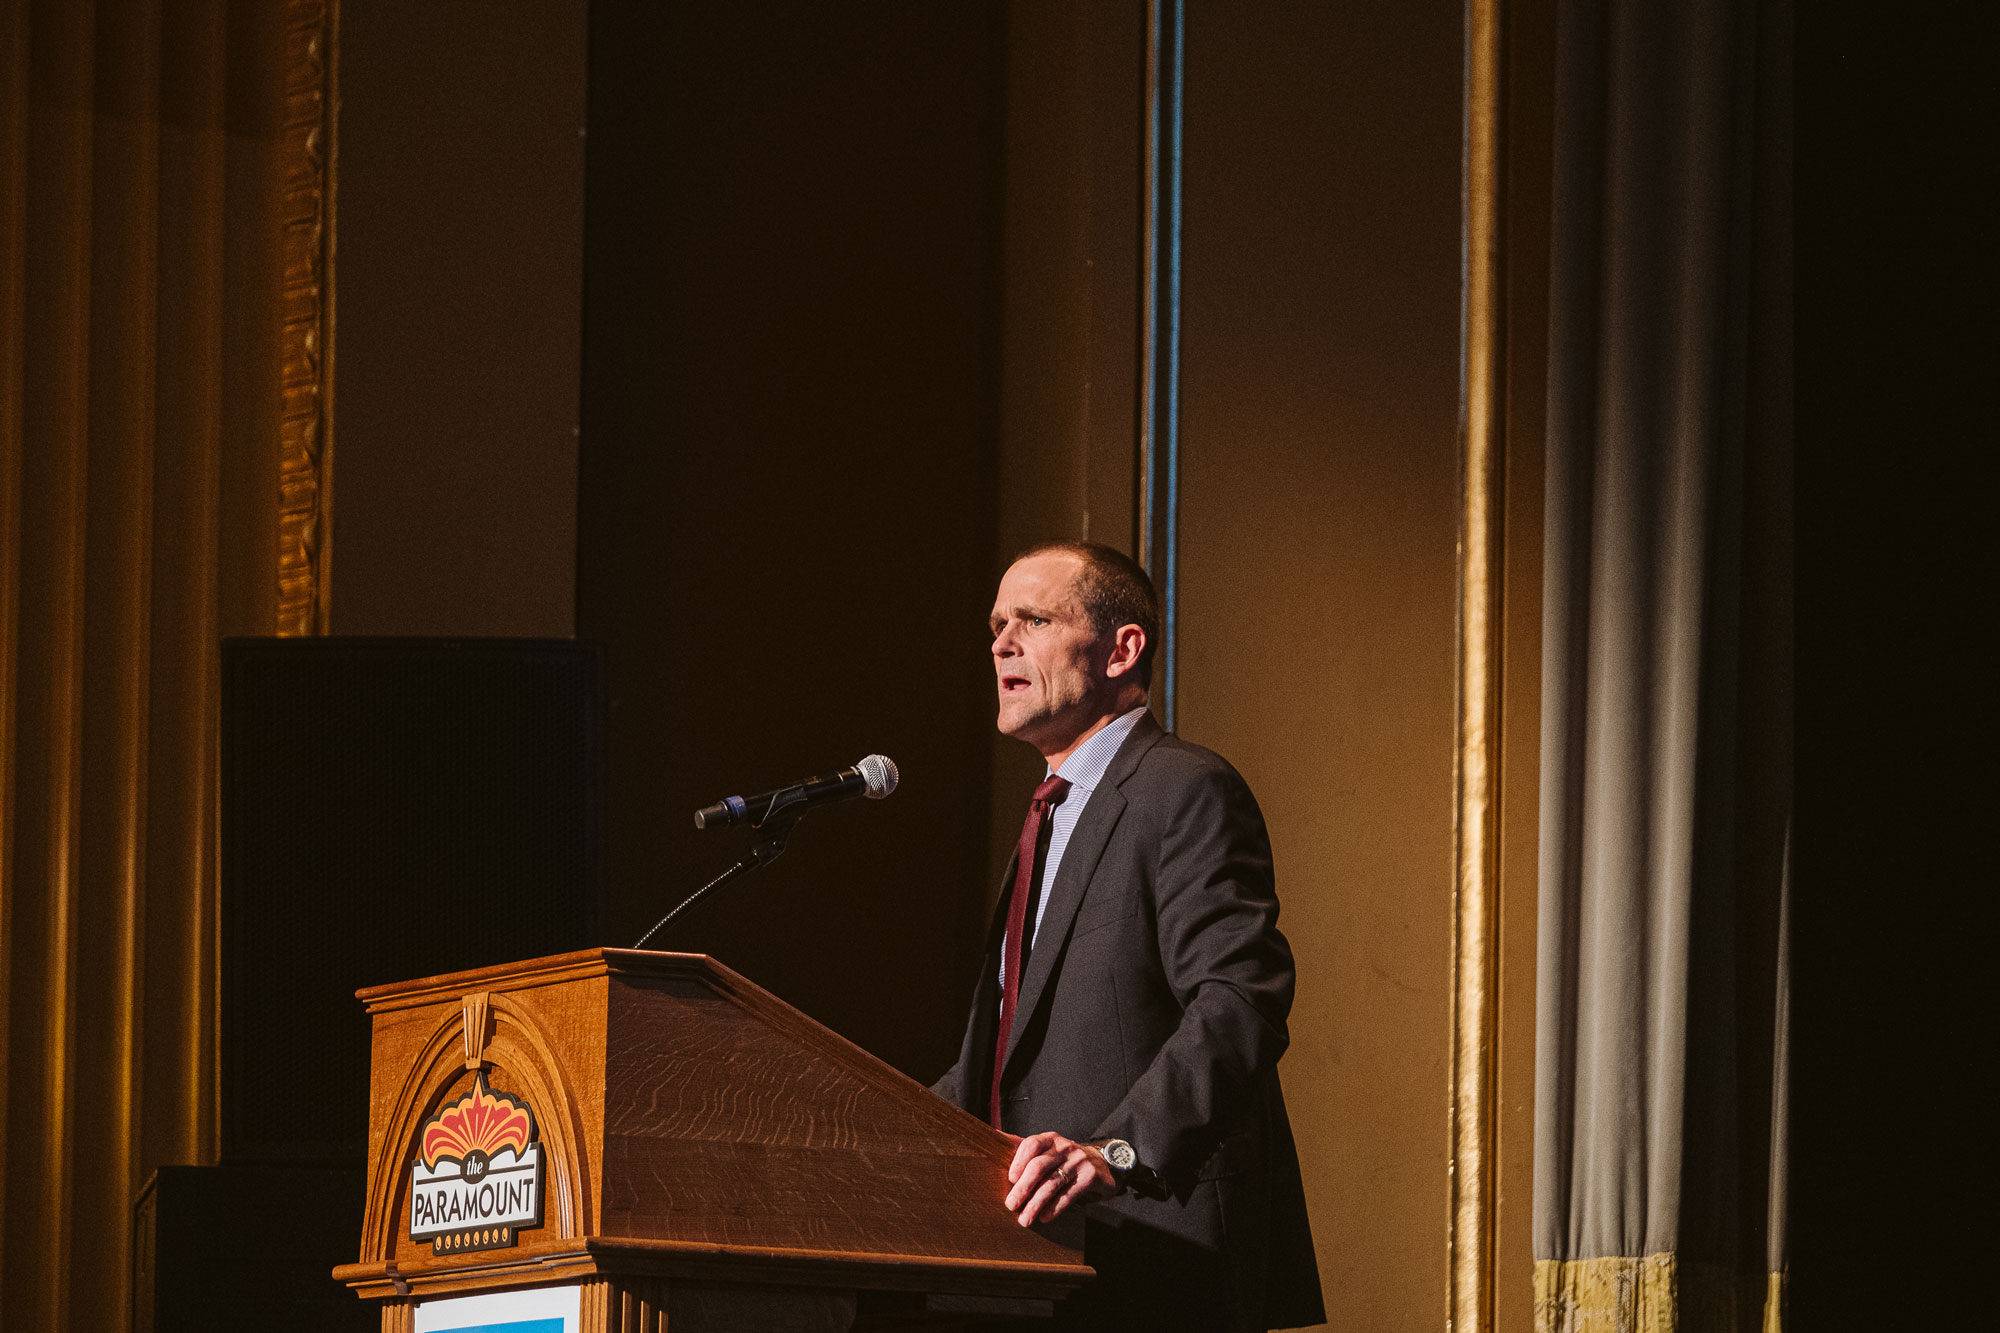 UVA President Jim Ryan introduced the film, calling lawyer Bryan Stevenson one of his heroes. (Photo by Eze Amos)